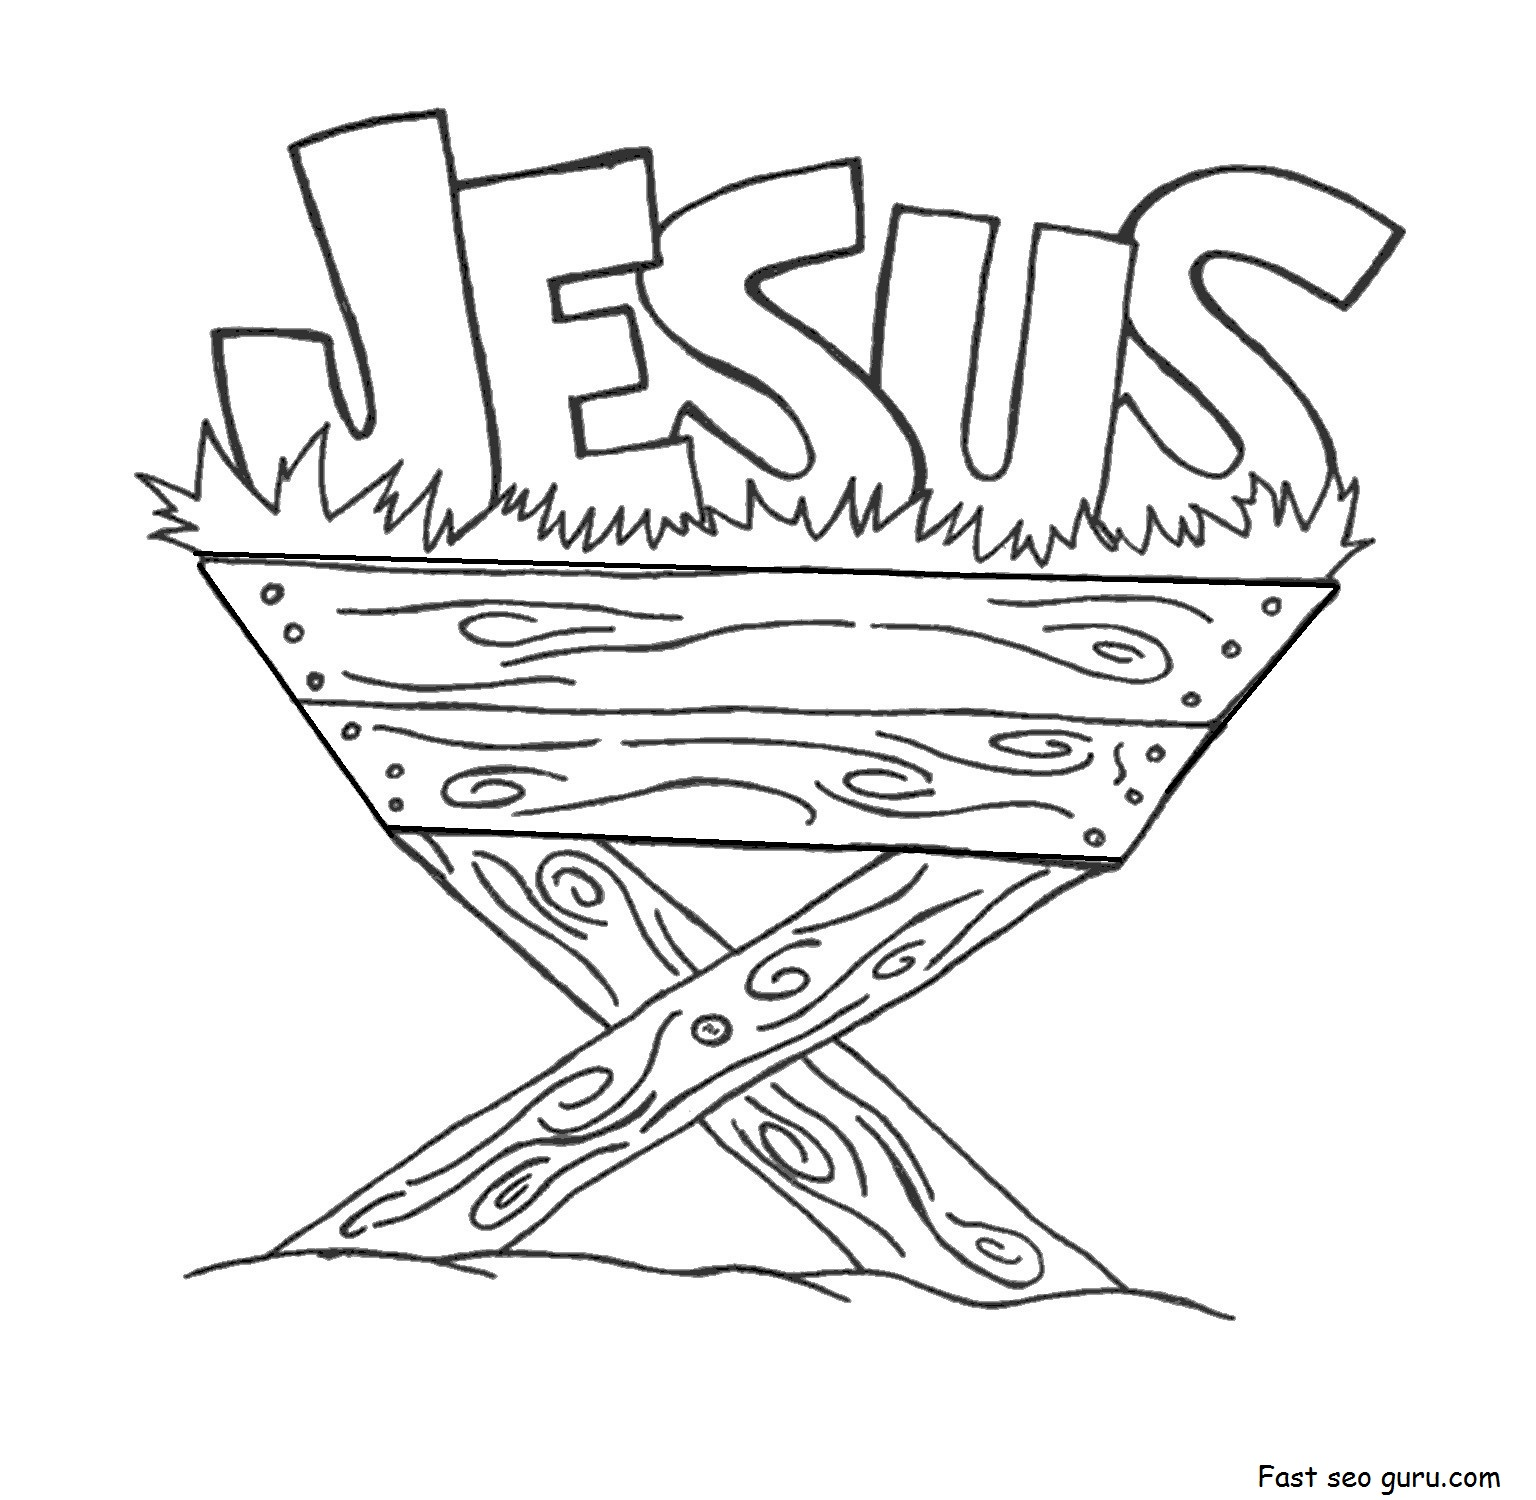 coloring pages about jesus - print out jesus in the manger coloring pages printable coloring pages for kids